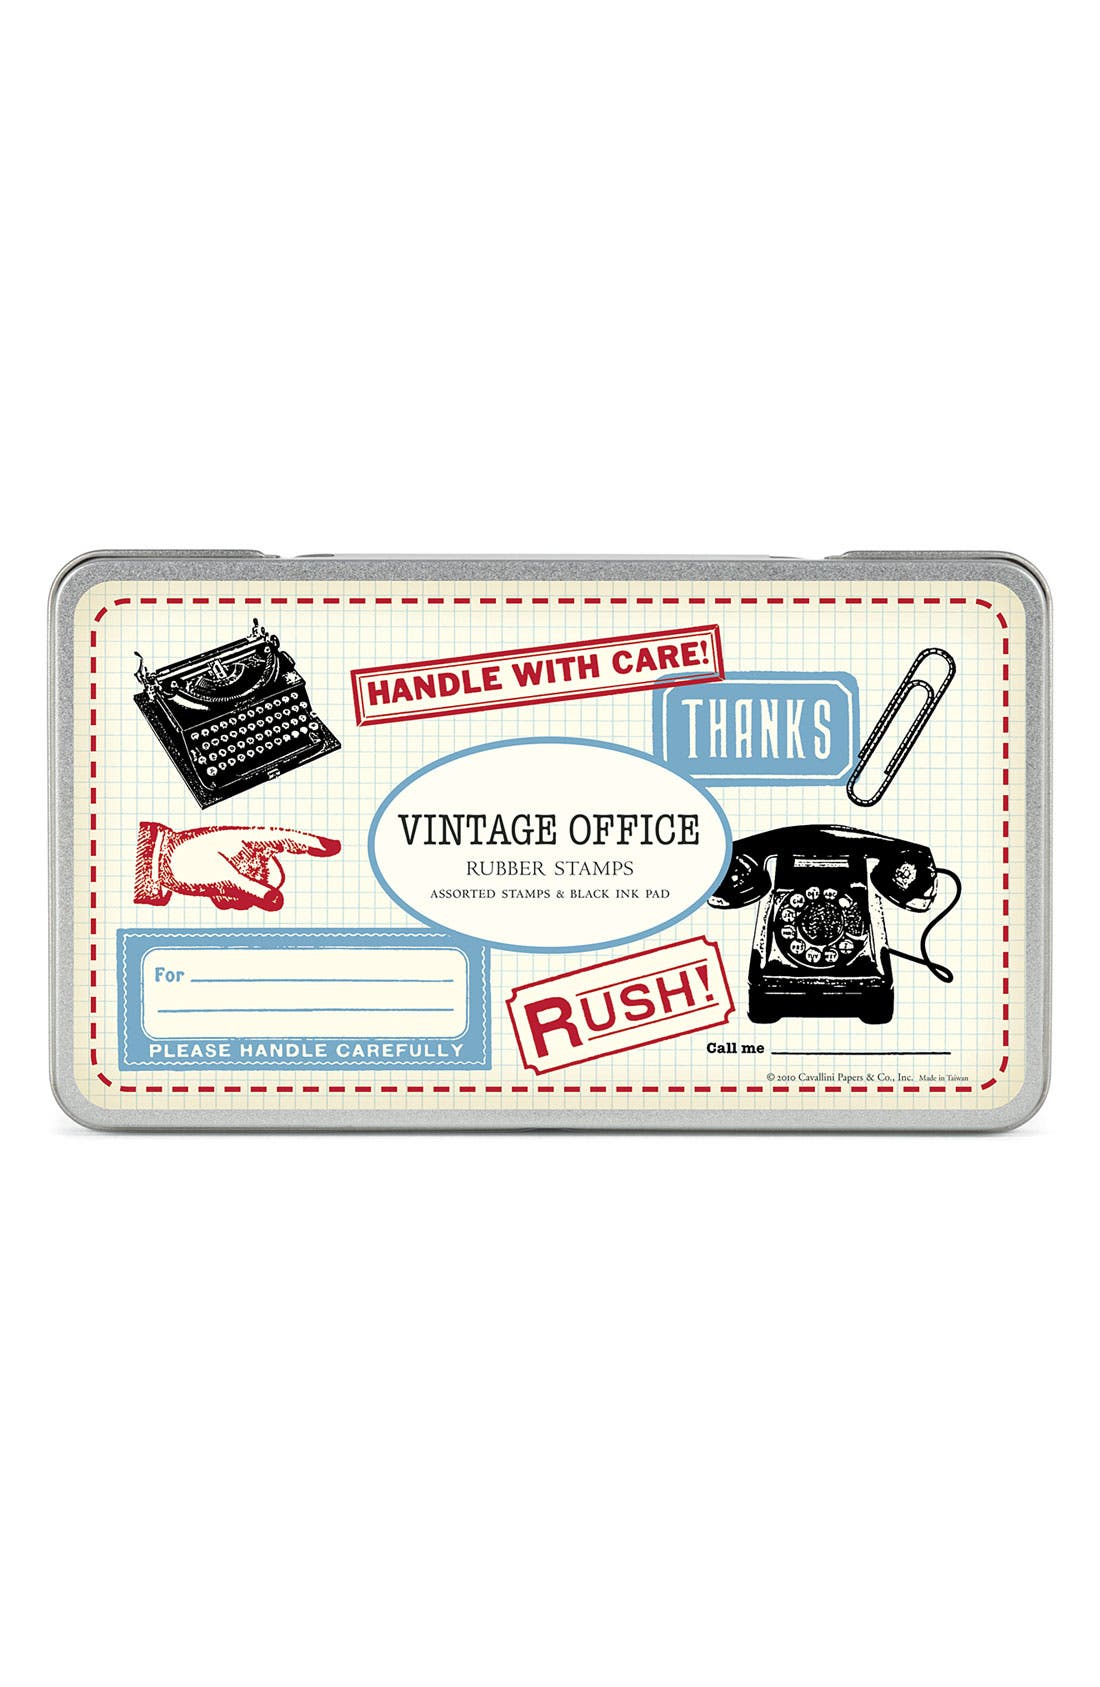 Alternate Image 1 Selected - Cavallini & Co. 'Vintage Office' Rubber Stamps